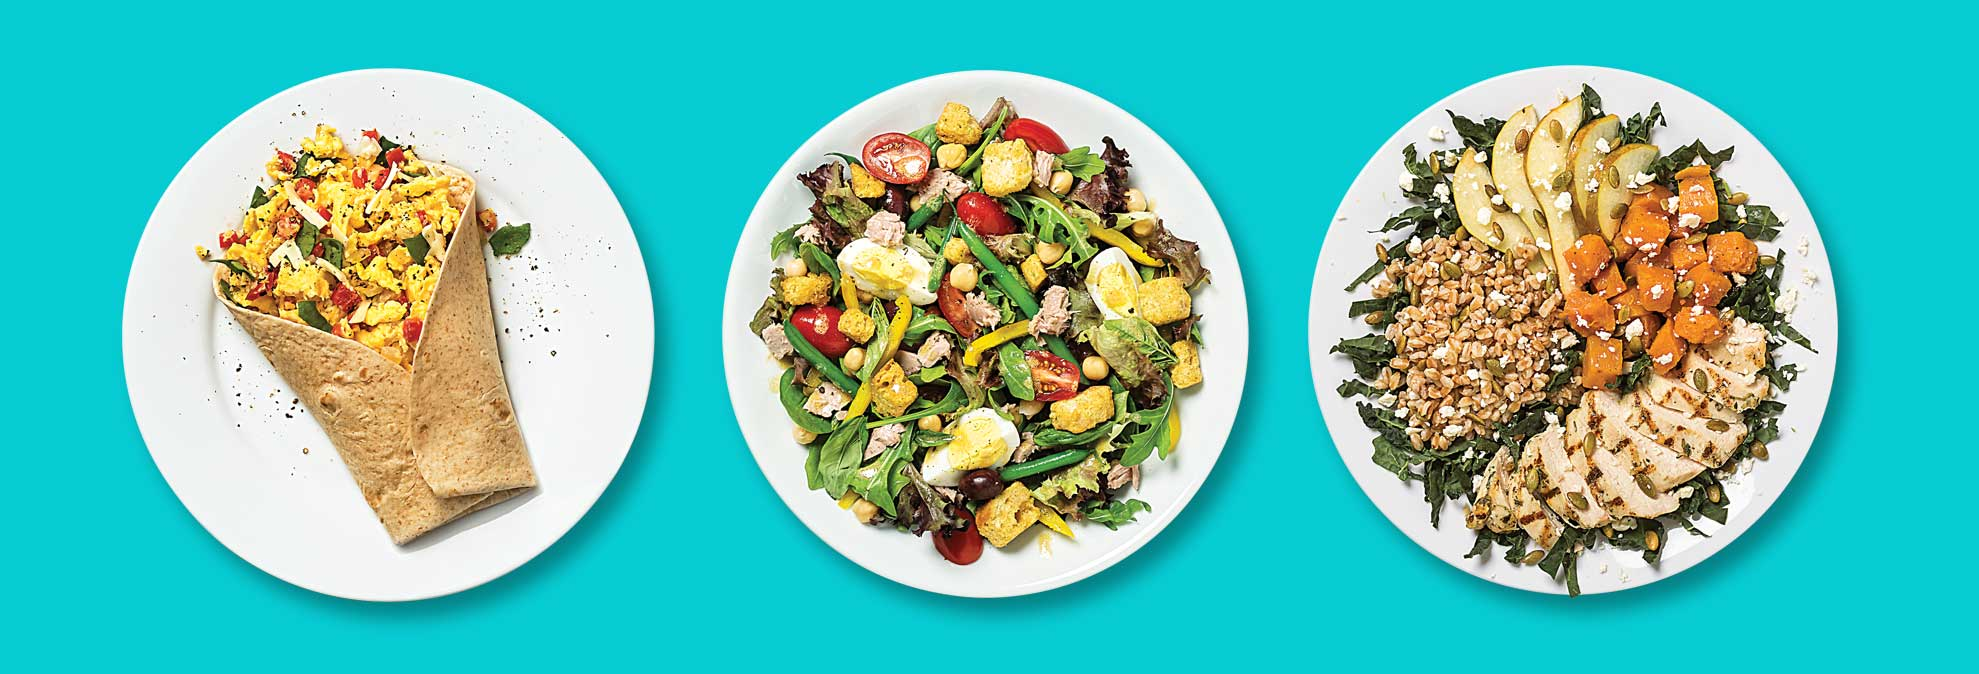 9 Easy, Healthy Recipes From CR\'s Test Kitchen - Consumer Reports